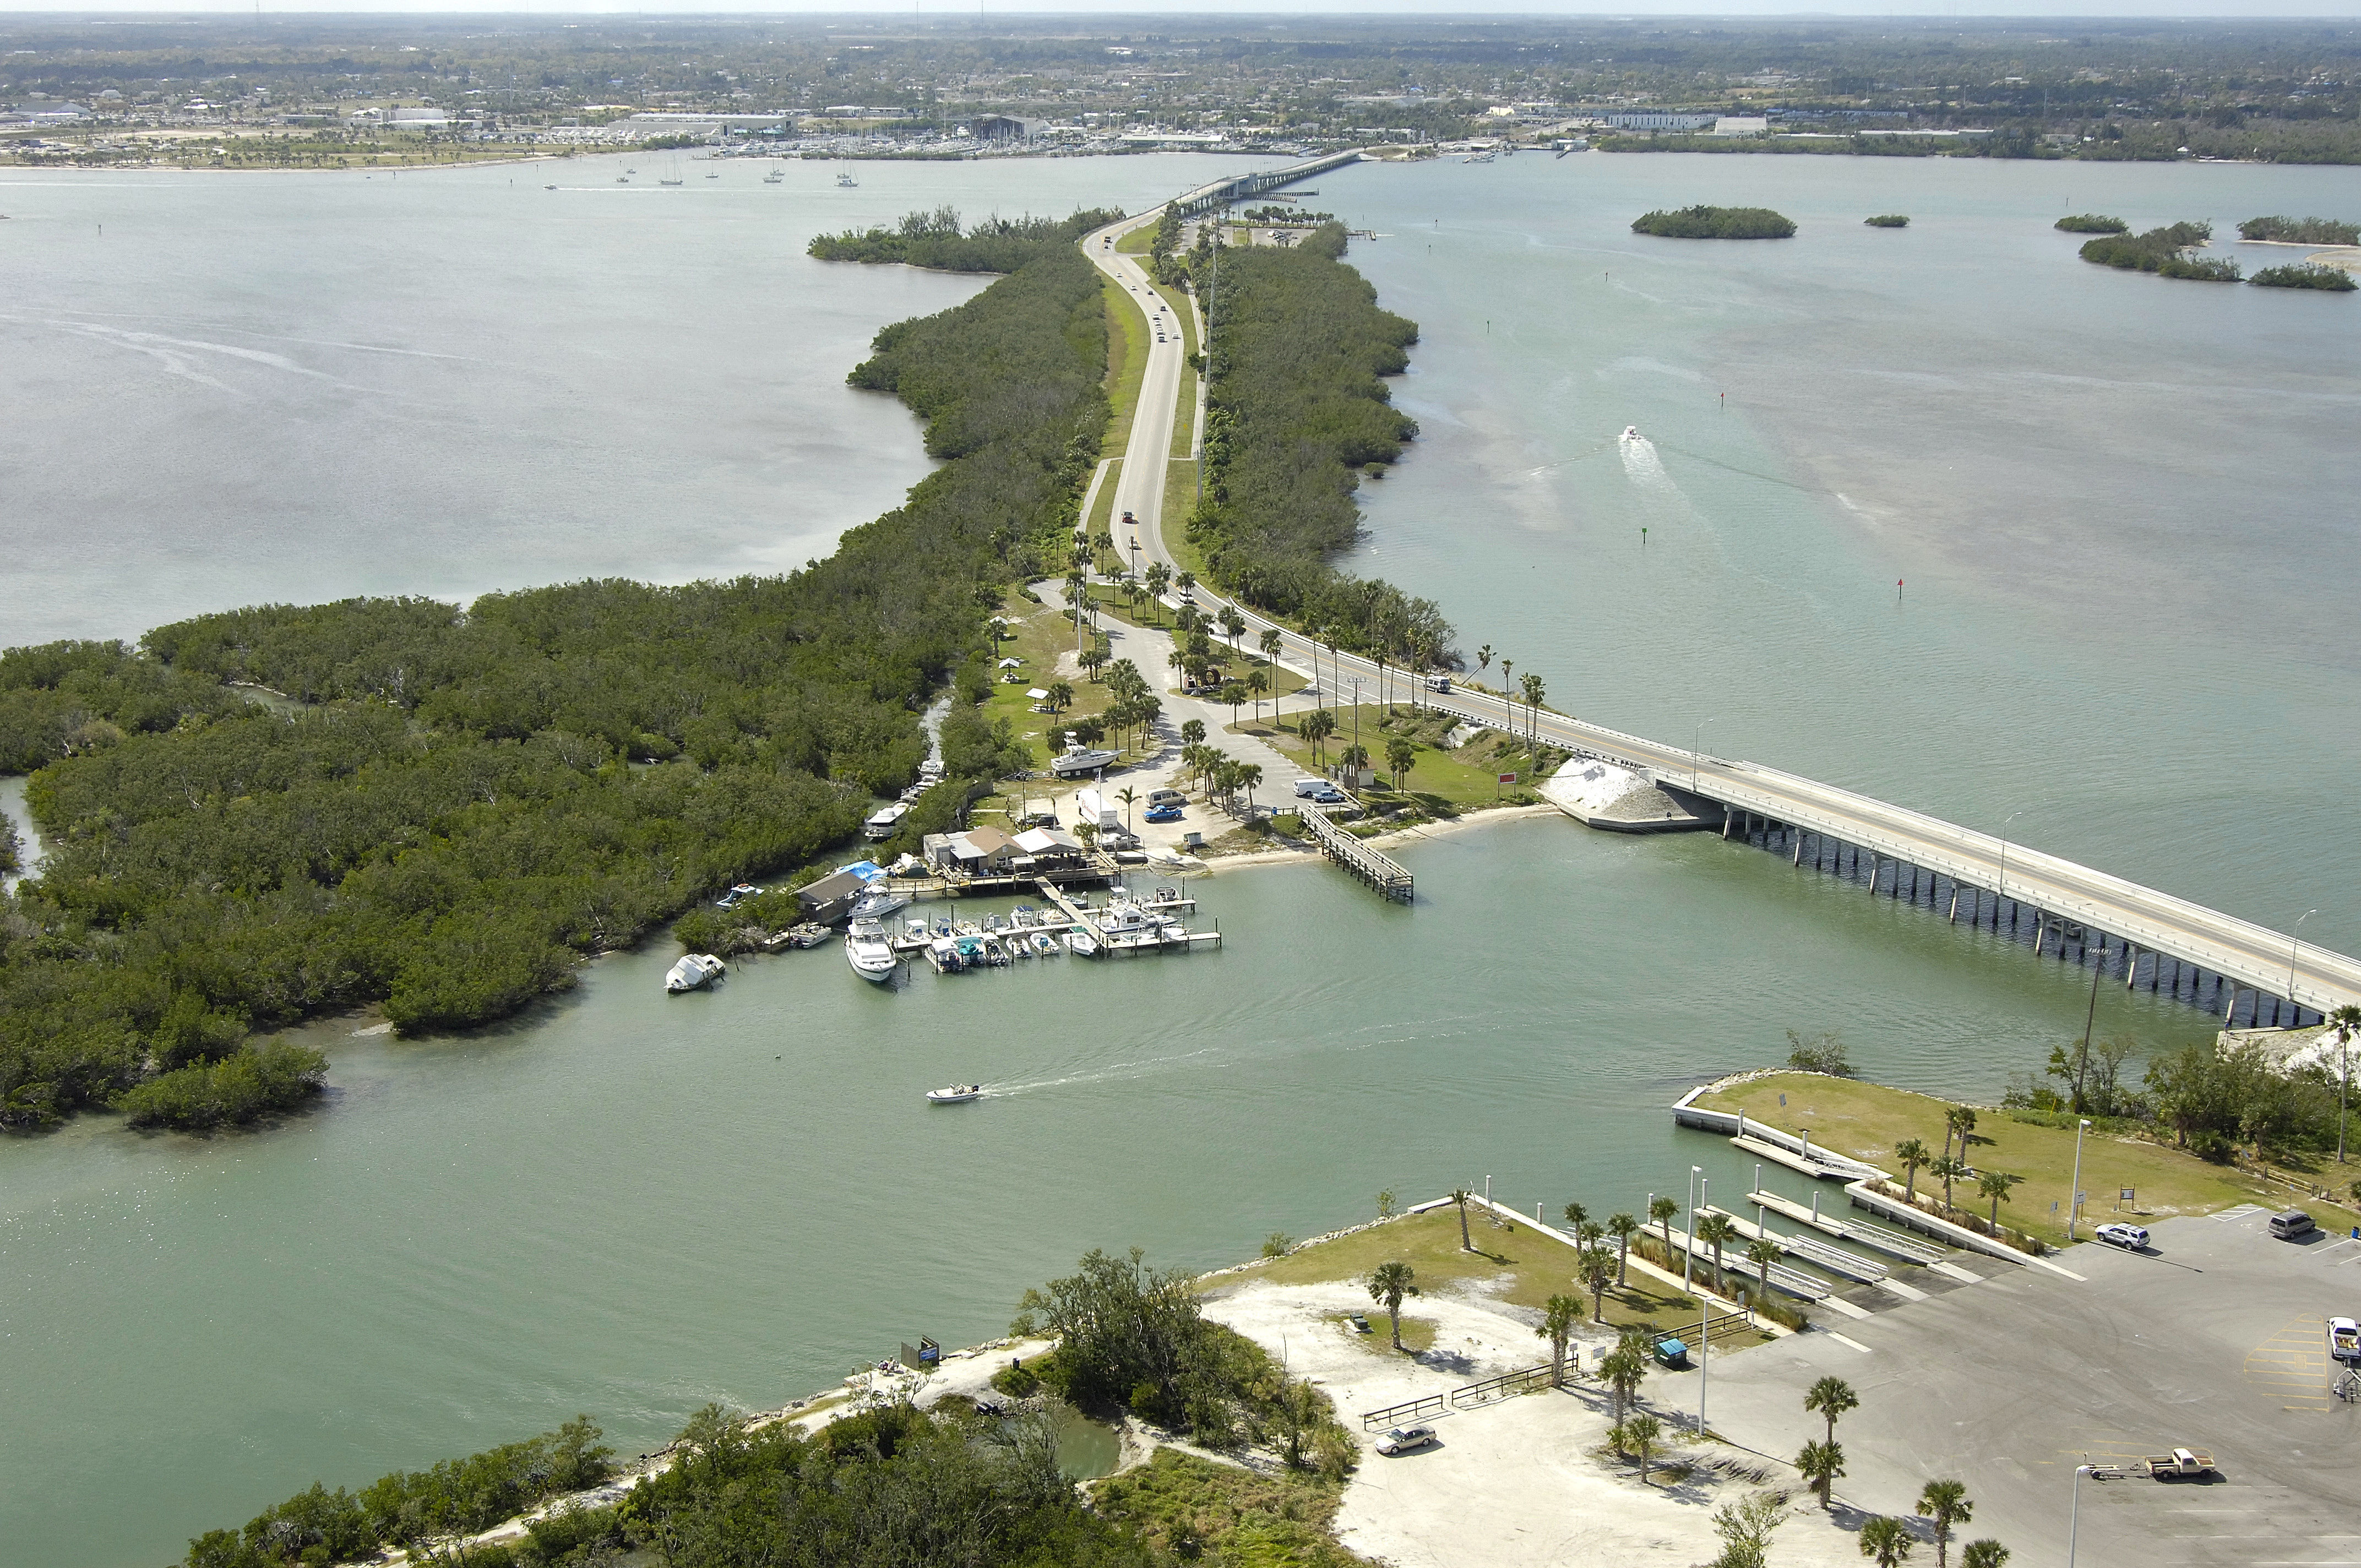 Things to do in Fort Pierce - Places to Visit in Fort